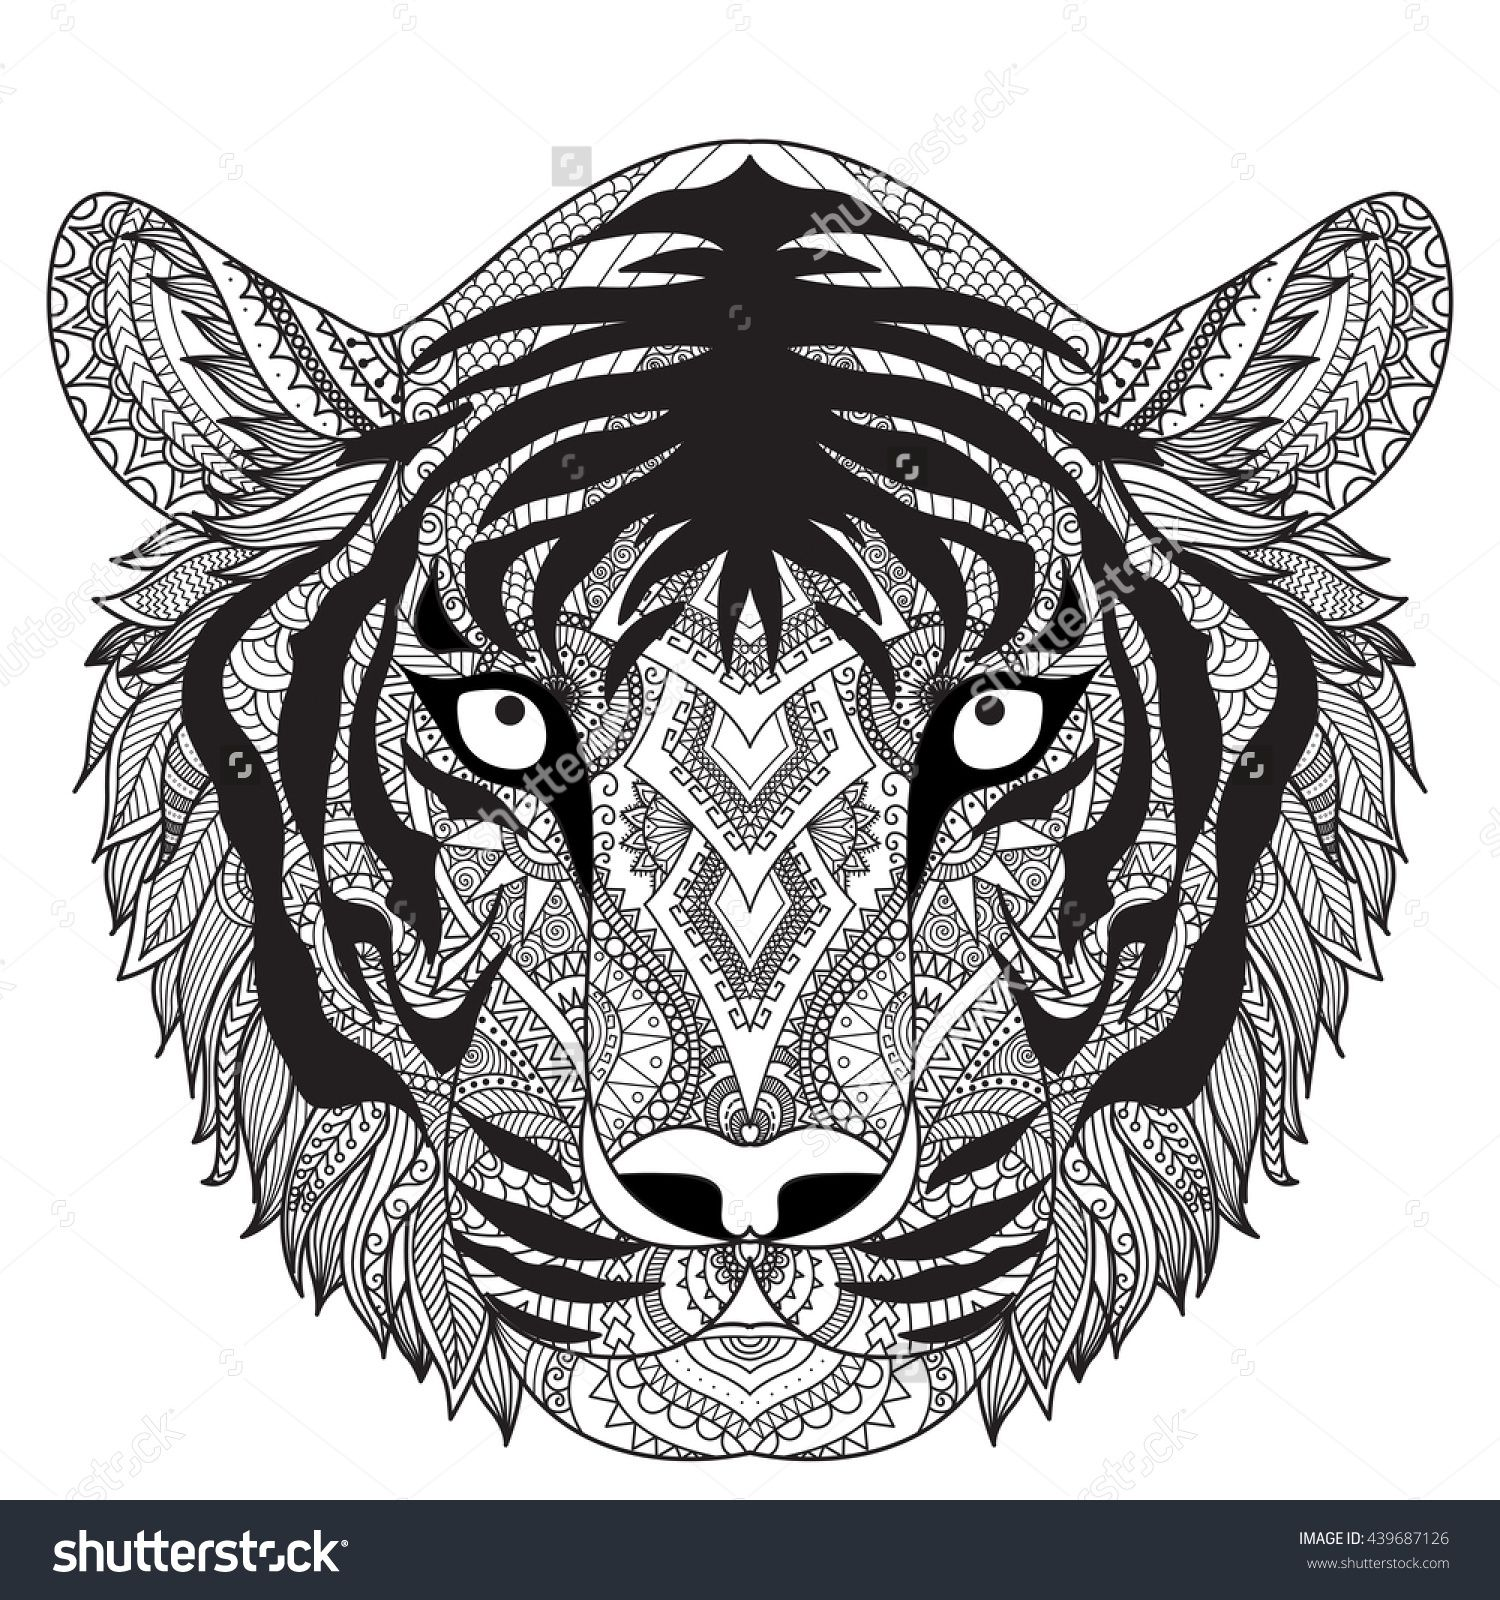 The coloring book clean - Clean Lines Doodle Design Of Tiger Face For T Shirt Graphic Tattoo